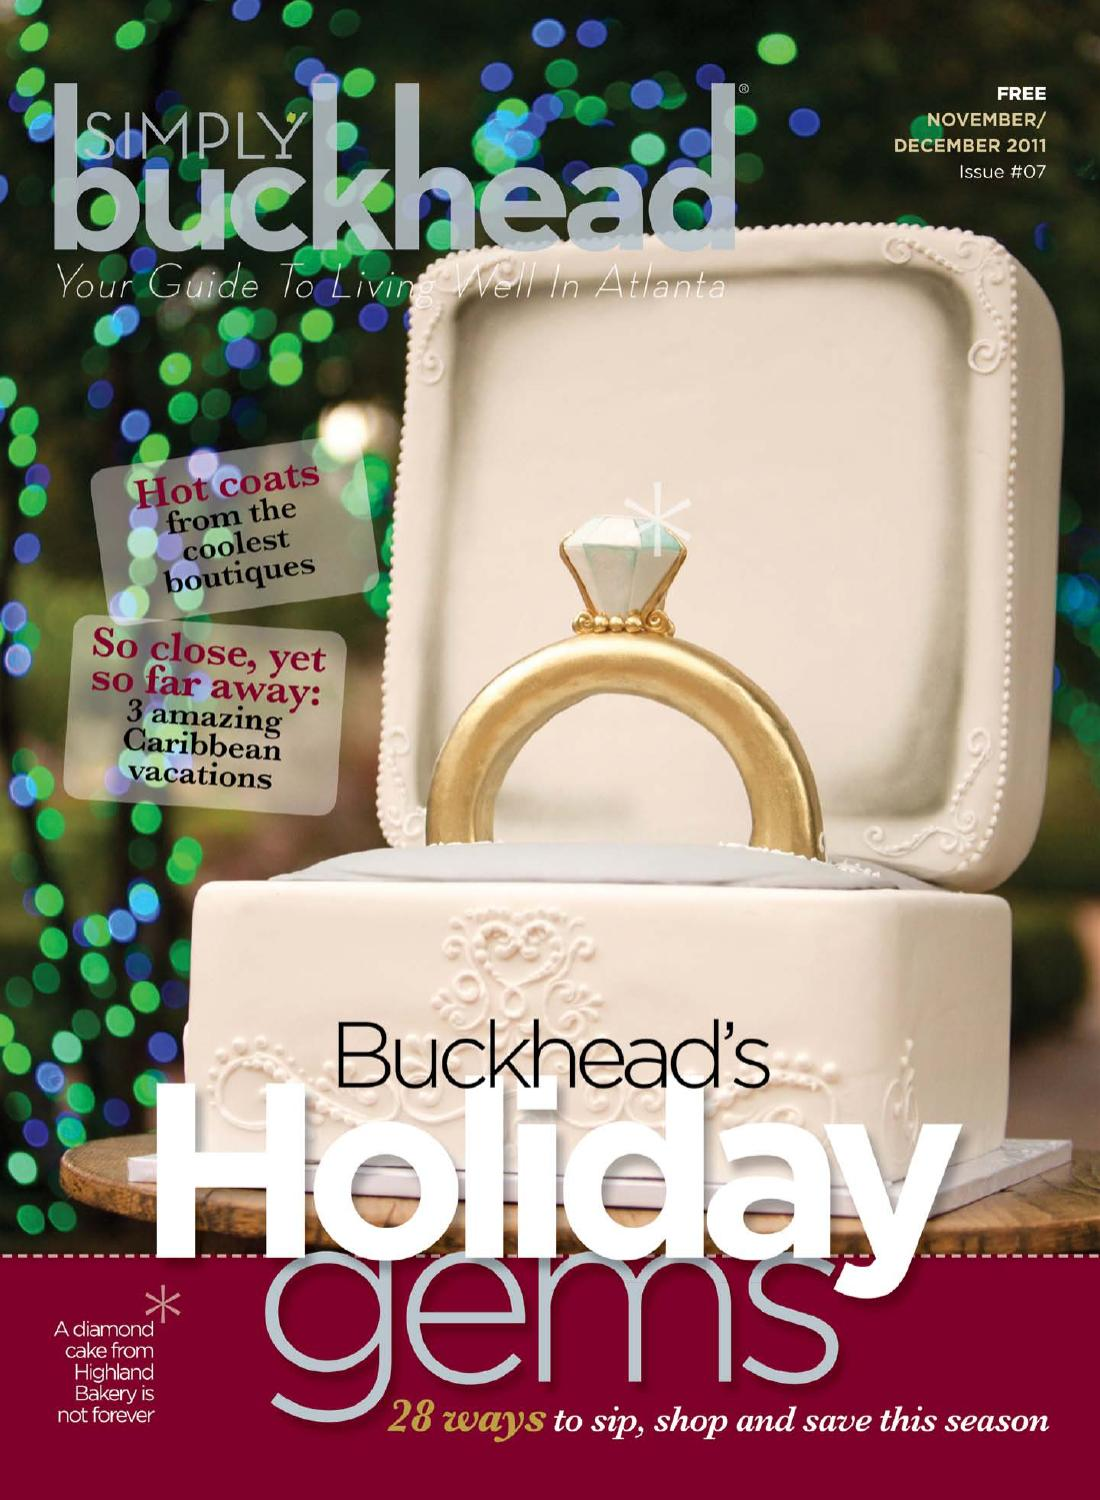 cc092cdc69e89 Simply Buckhead November December 2011 by Simply Buckhead - issuu